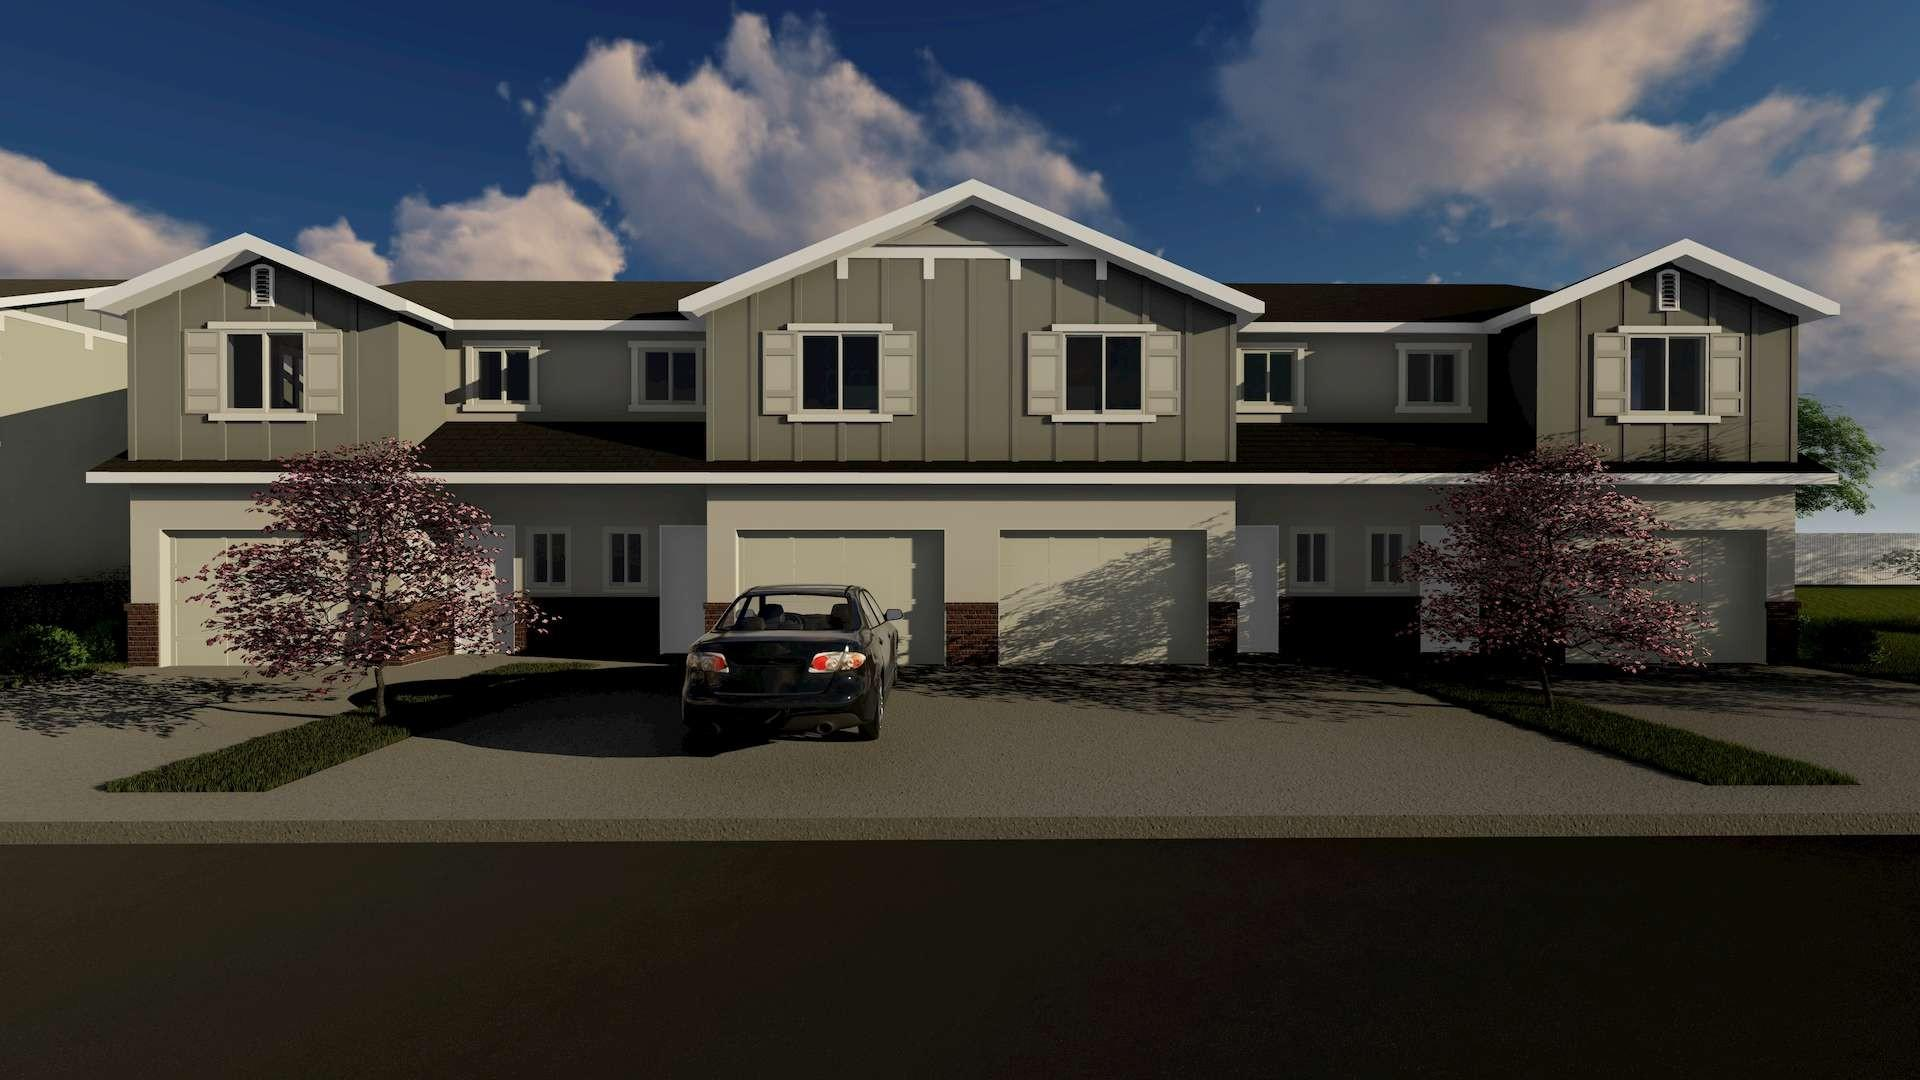 fourplexes for sale near Boise, Idaho